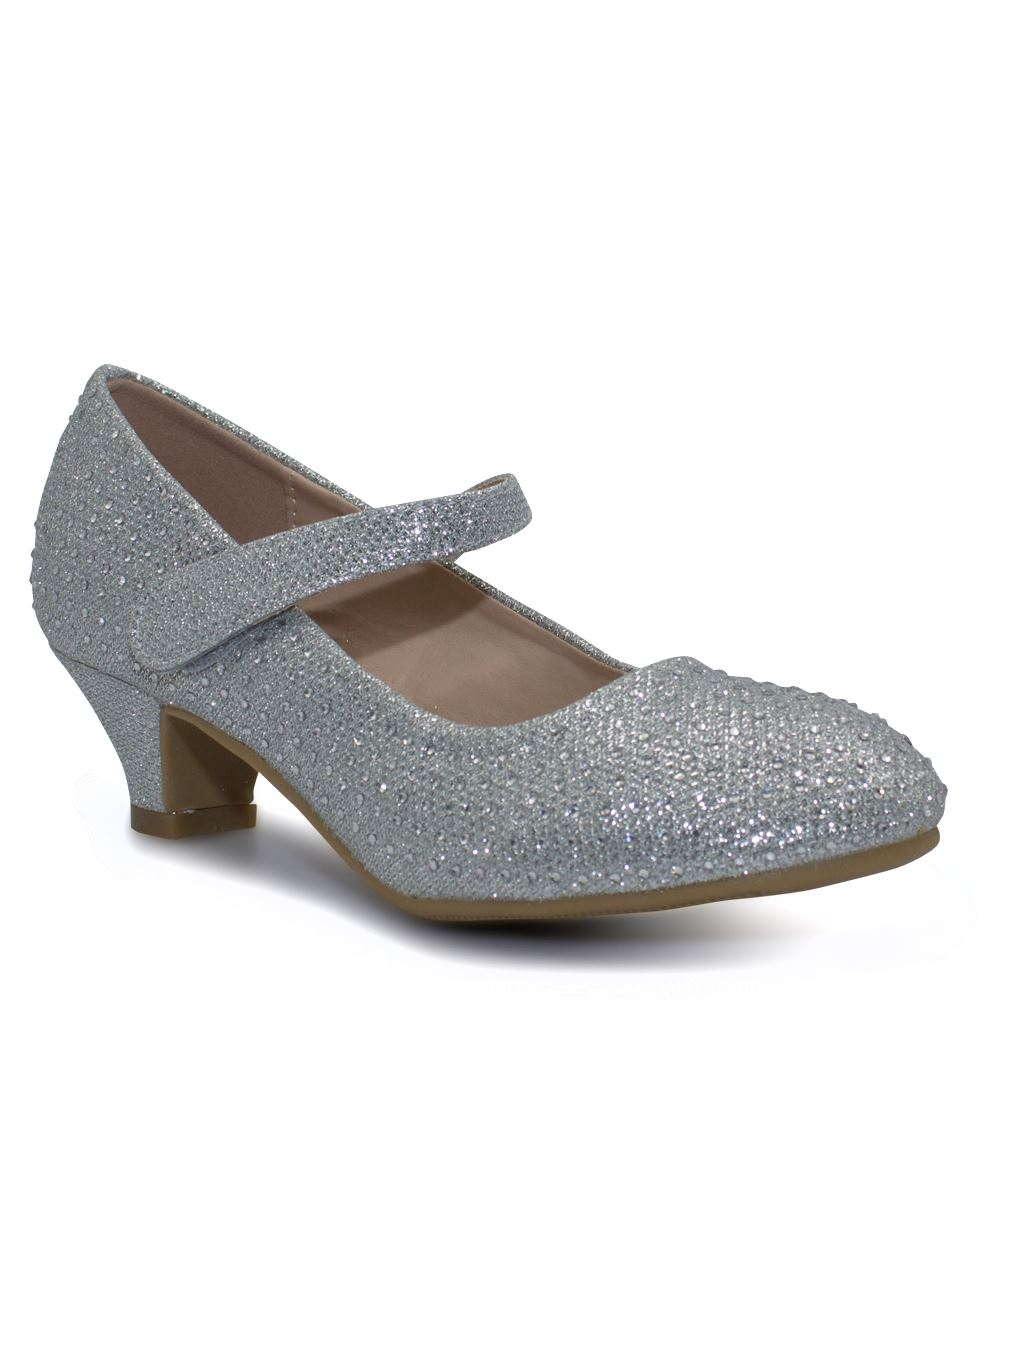 Girls-Party-Bridesmaid-Glitter-Diamante-Wedding-Block-Low-Heel-Shoes miniatura 6